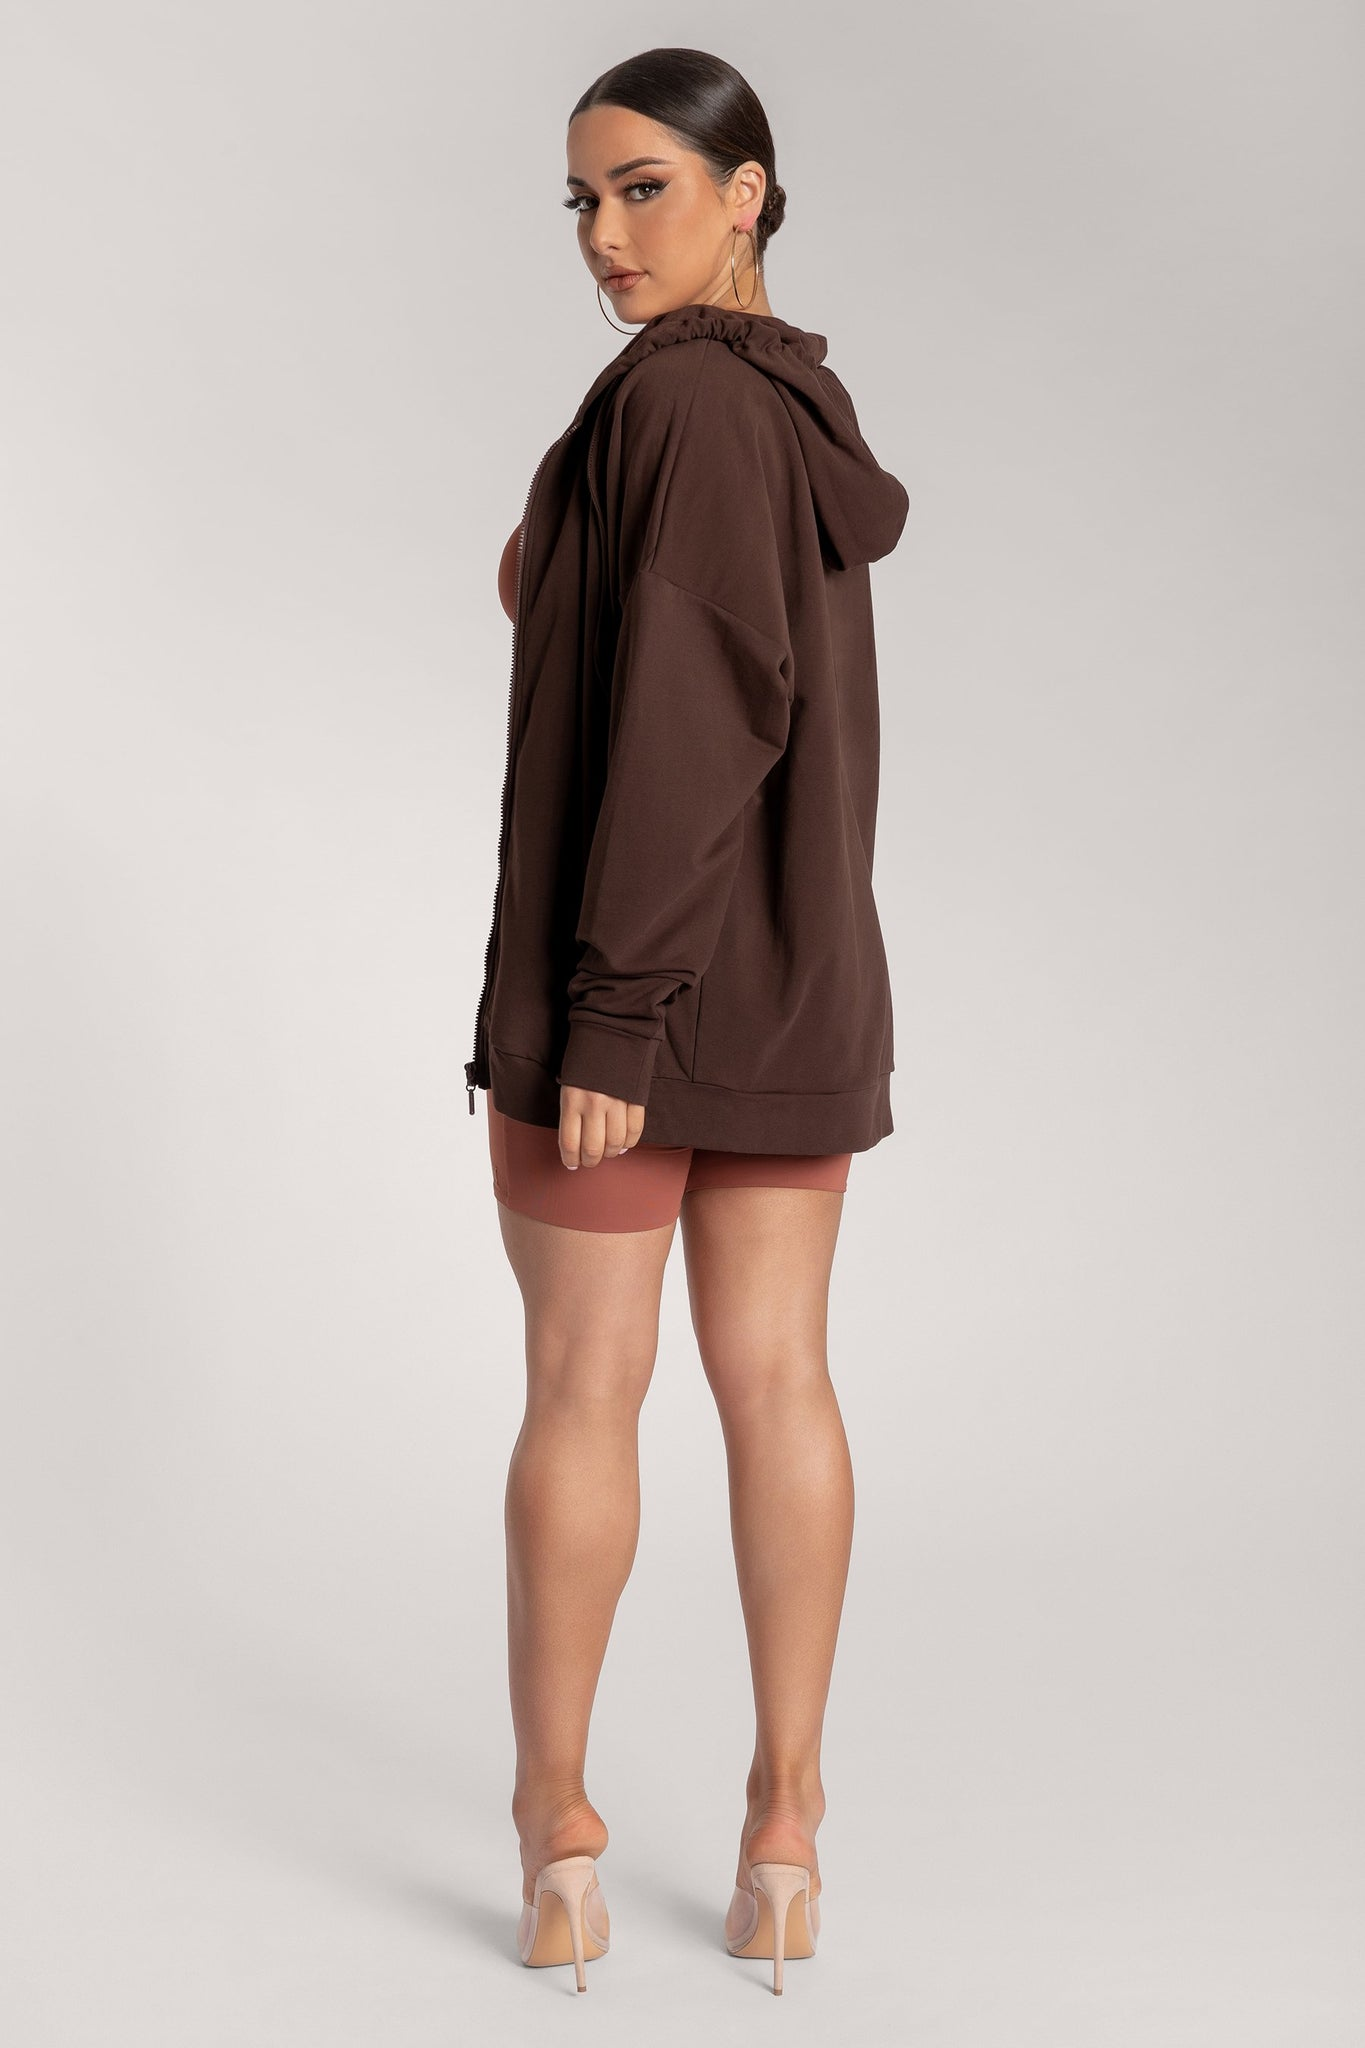 Maia Long Sleeve Zip Up Hoodie Jacket - Chocolate - MESHKI